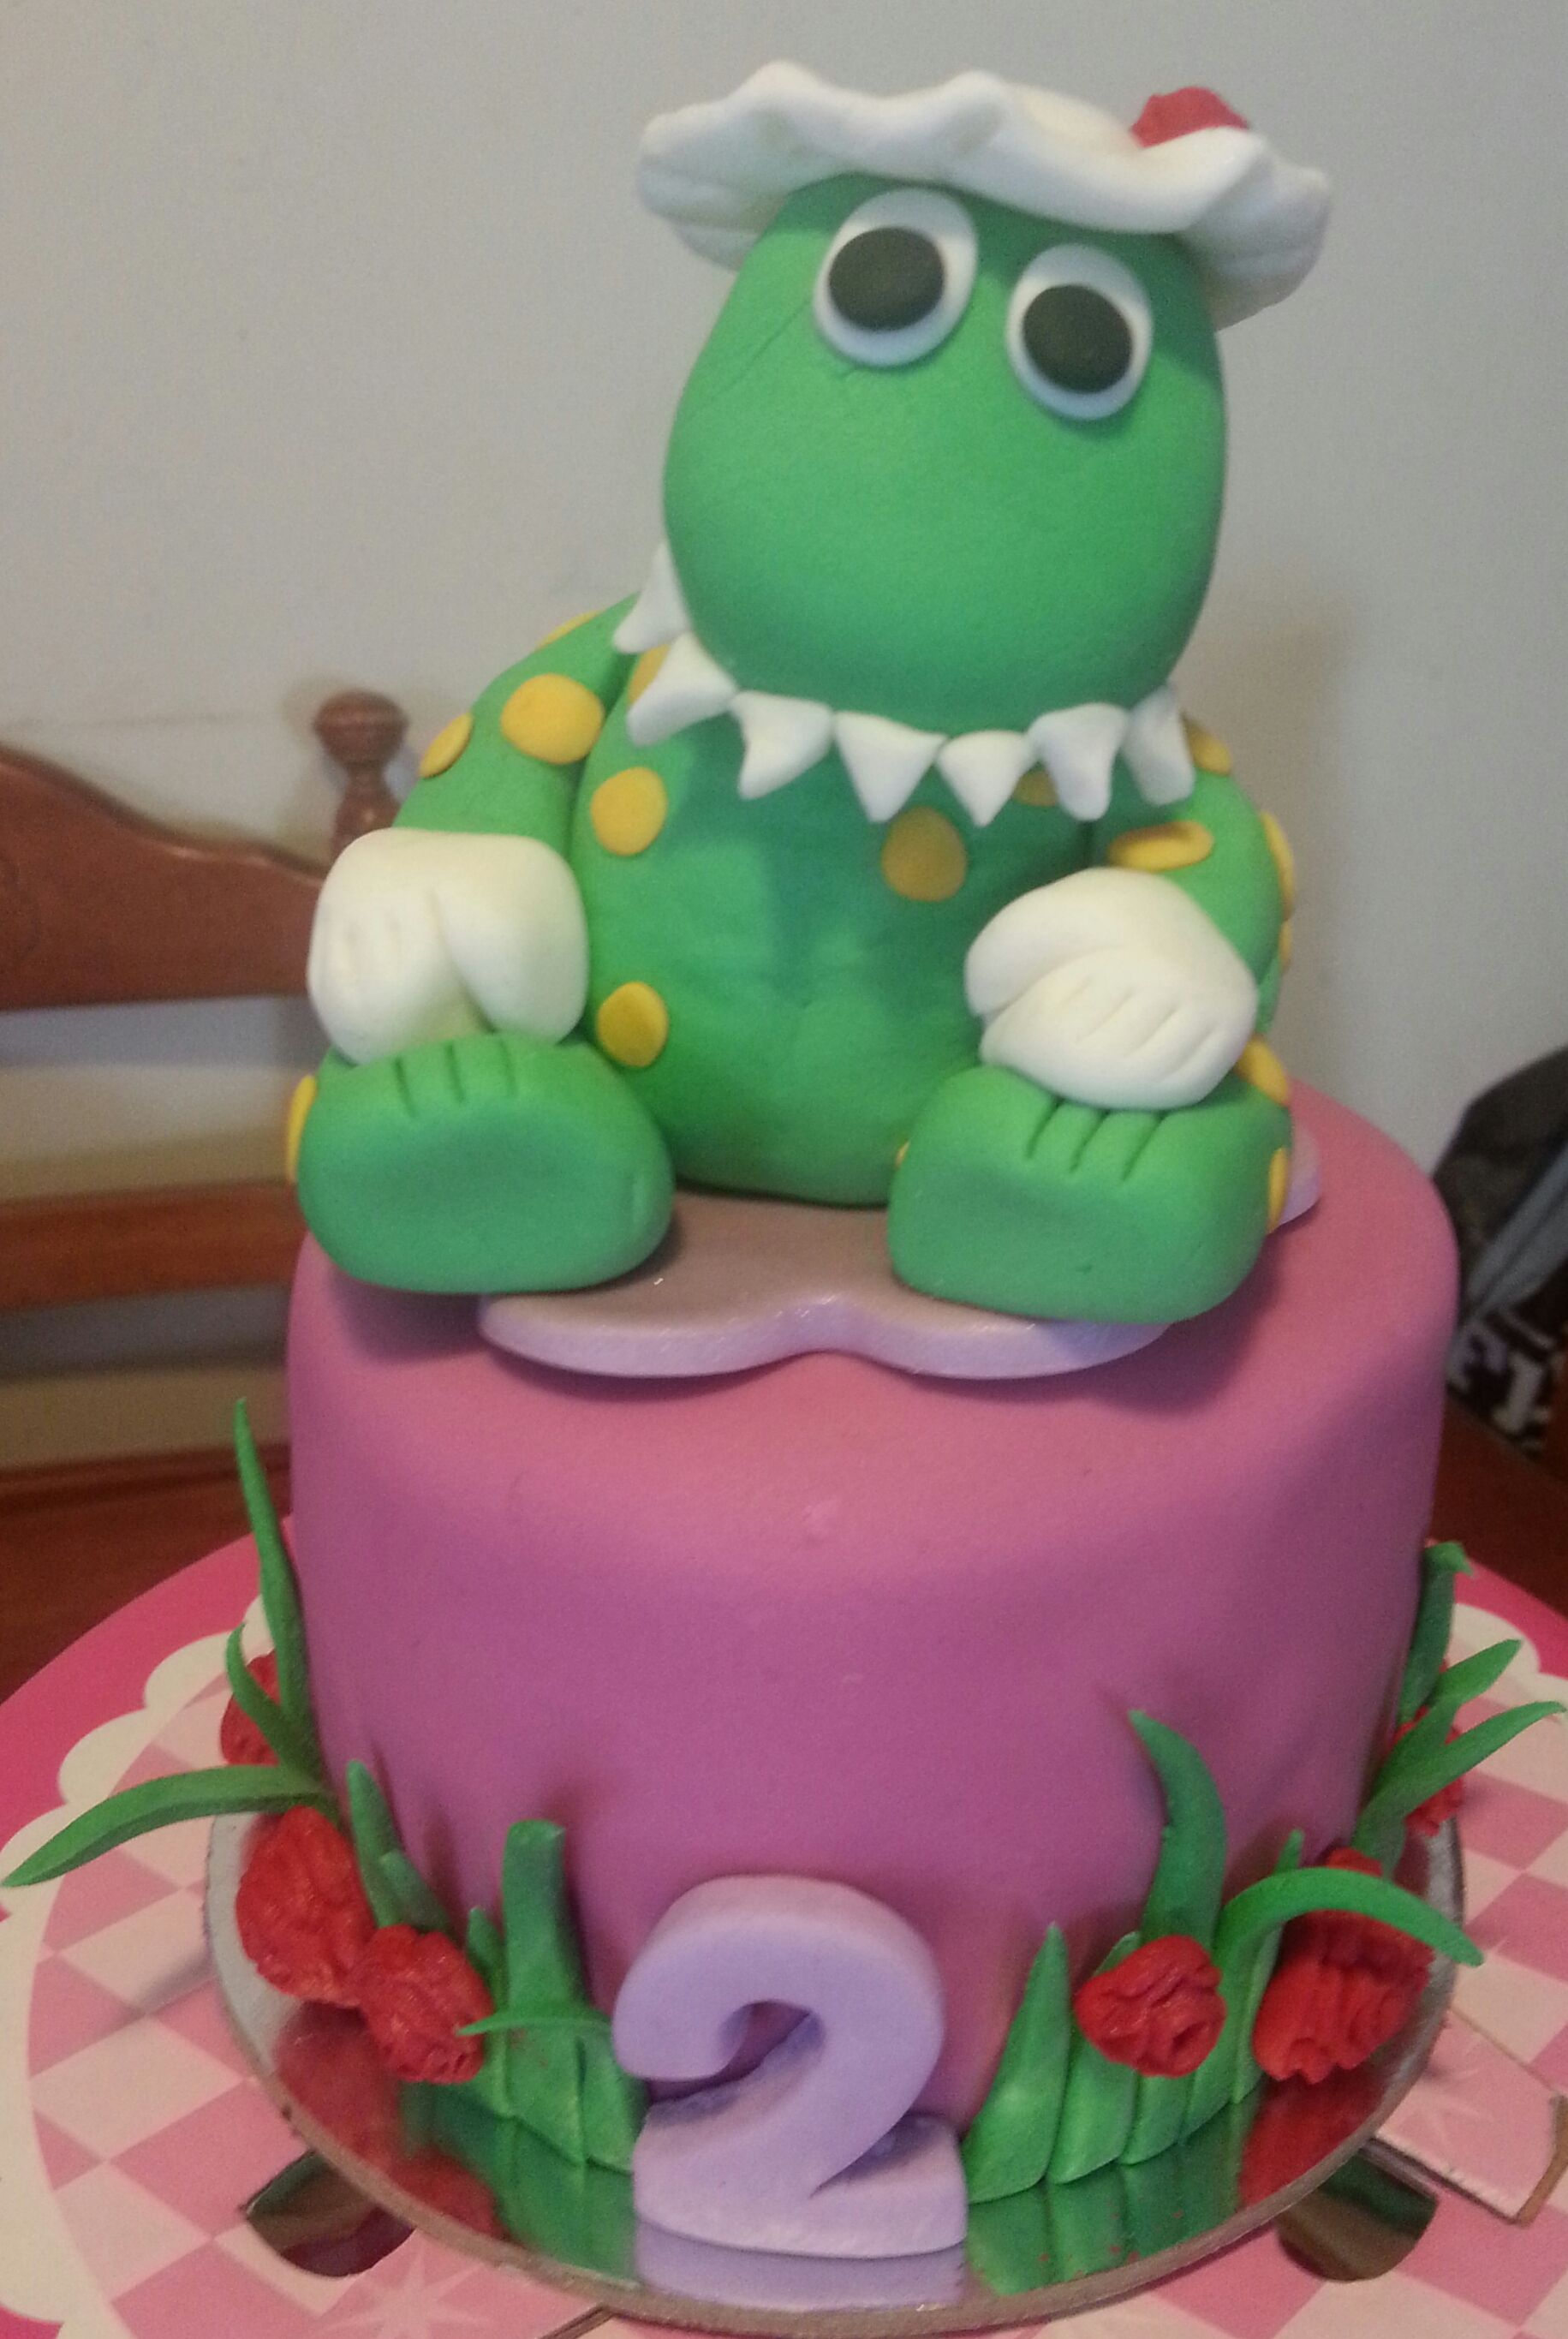 Dorothy The Dinosaur Small Cake And Topper Www Facebook Com Terezia Annand Dinosaur Cake Cake Small Cake